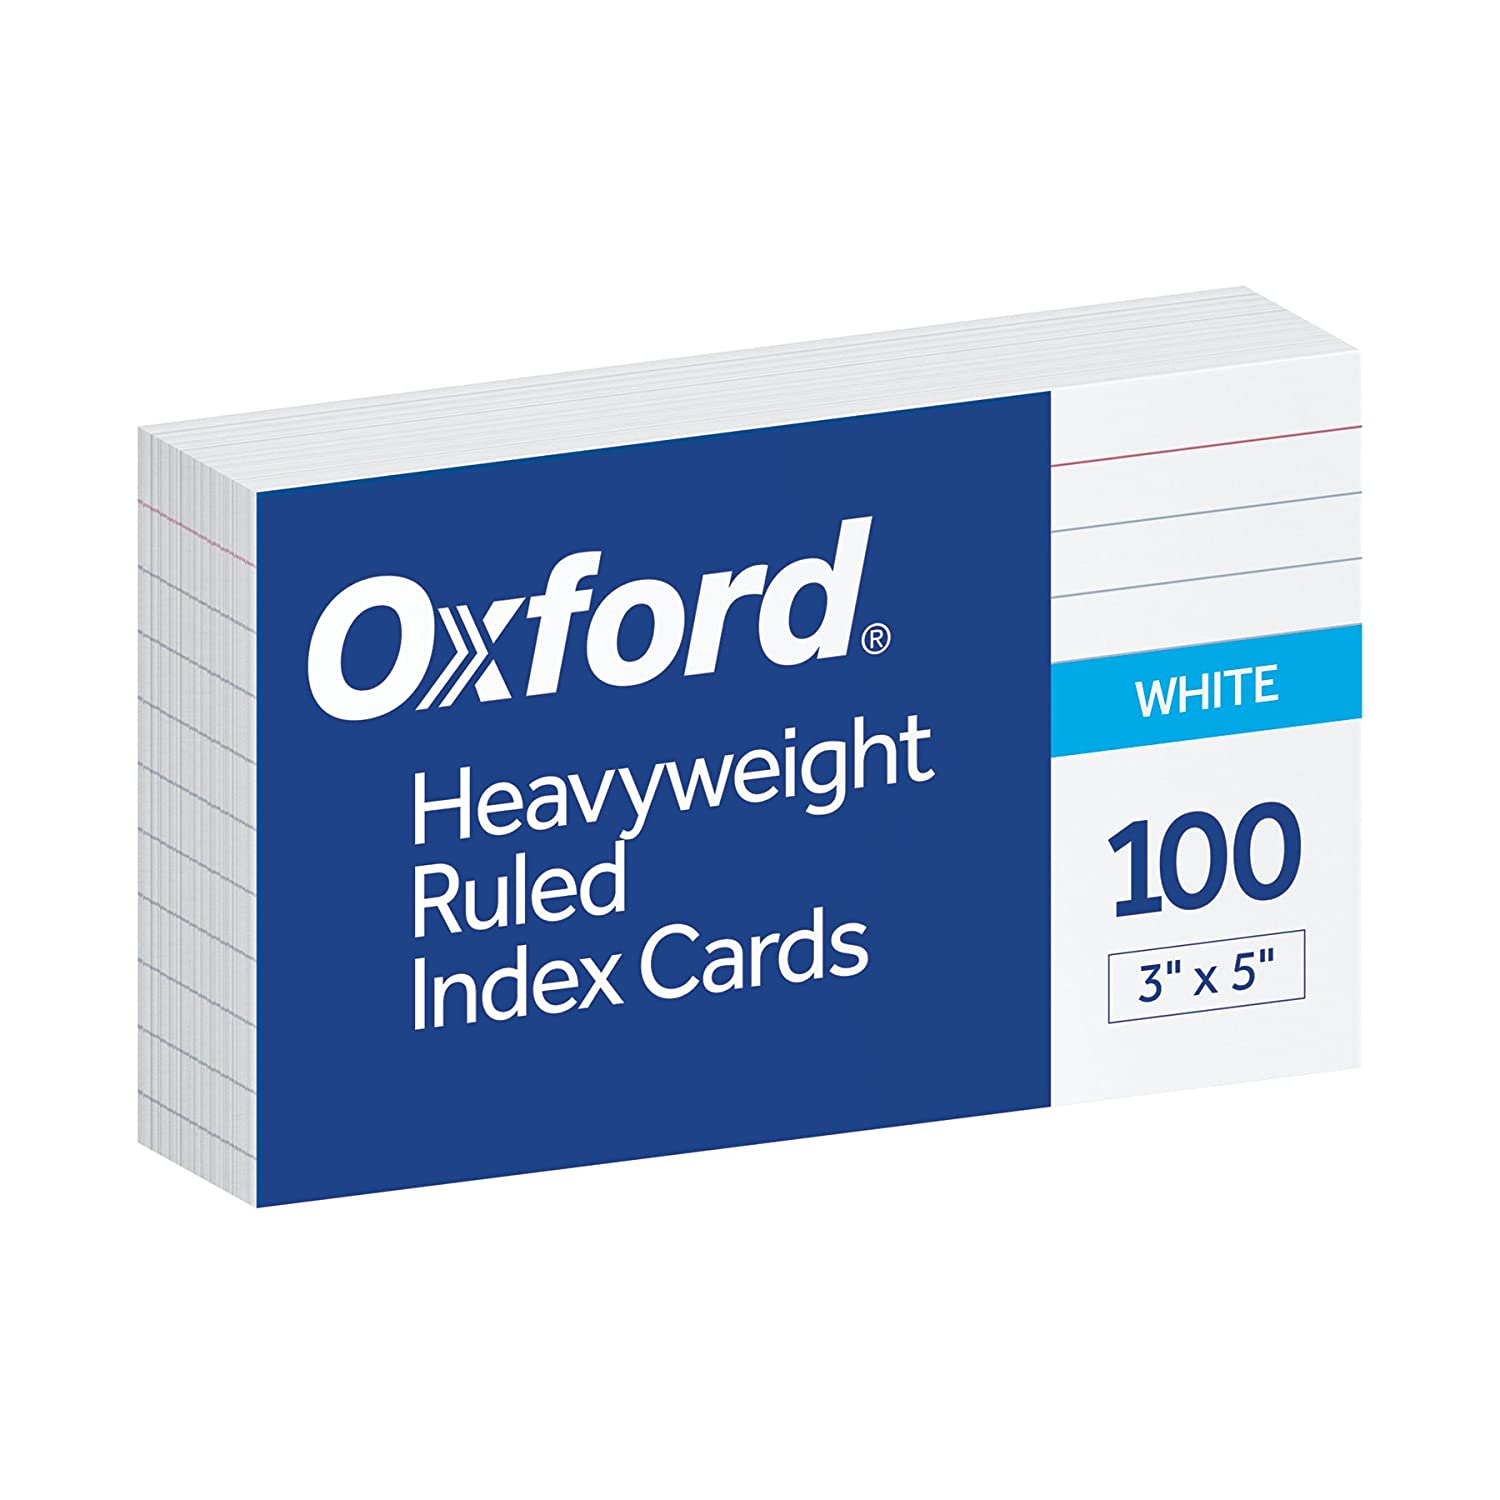 Oxford Heavy Weight Index Cards, 3 x 5, Ruled, White, 100/Pack (63500) 3 x 5 Esselte Corporation